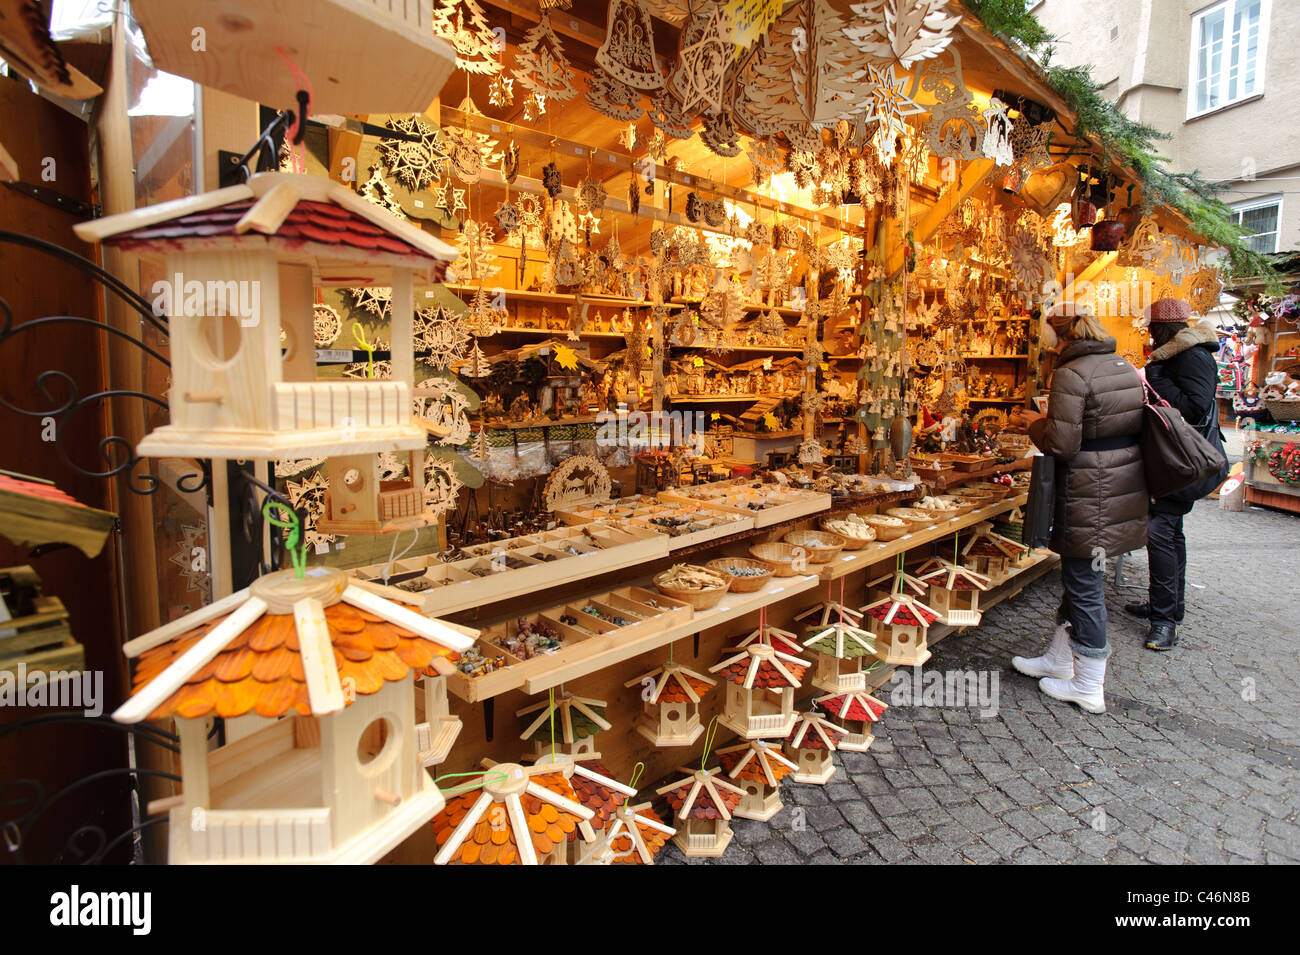 Salzburg Christmas Market.Christmas Market With Shops In Medieval Old Town Of City